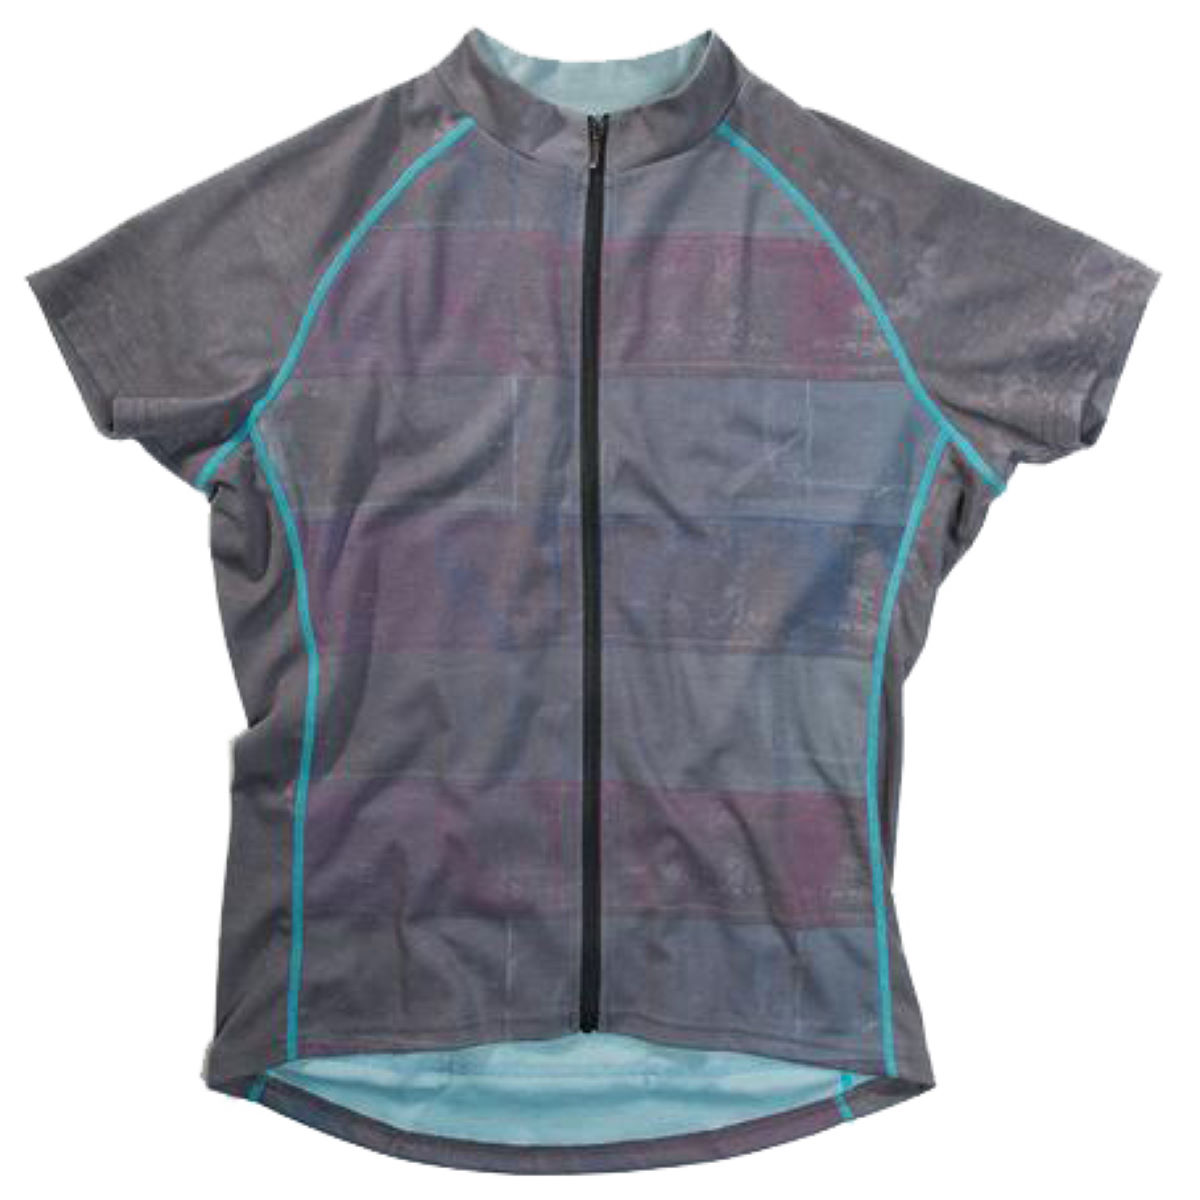 Maillot Femme Primal Emery Rambler - S Gris/Bleu Maillots